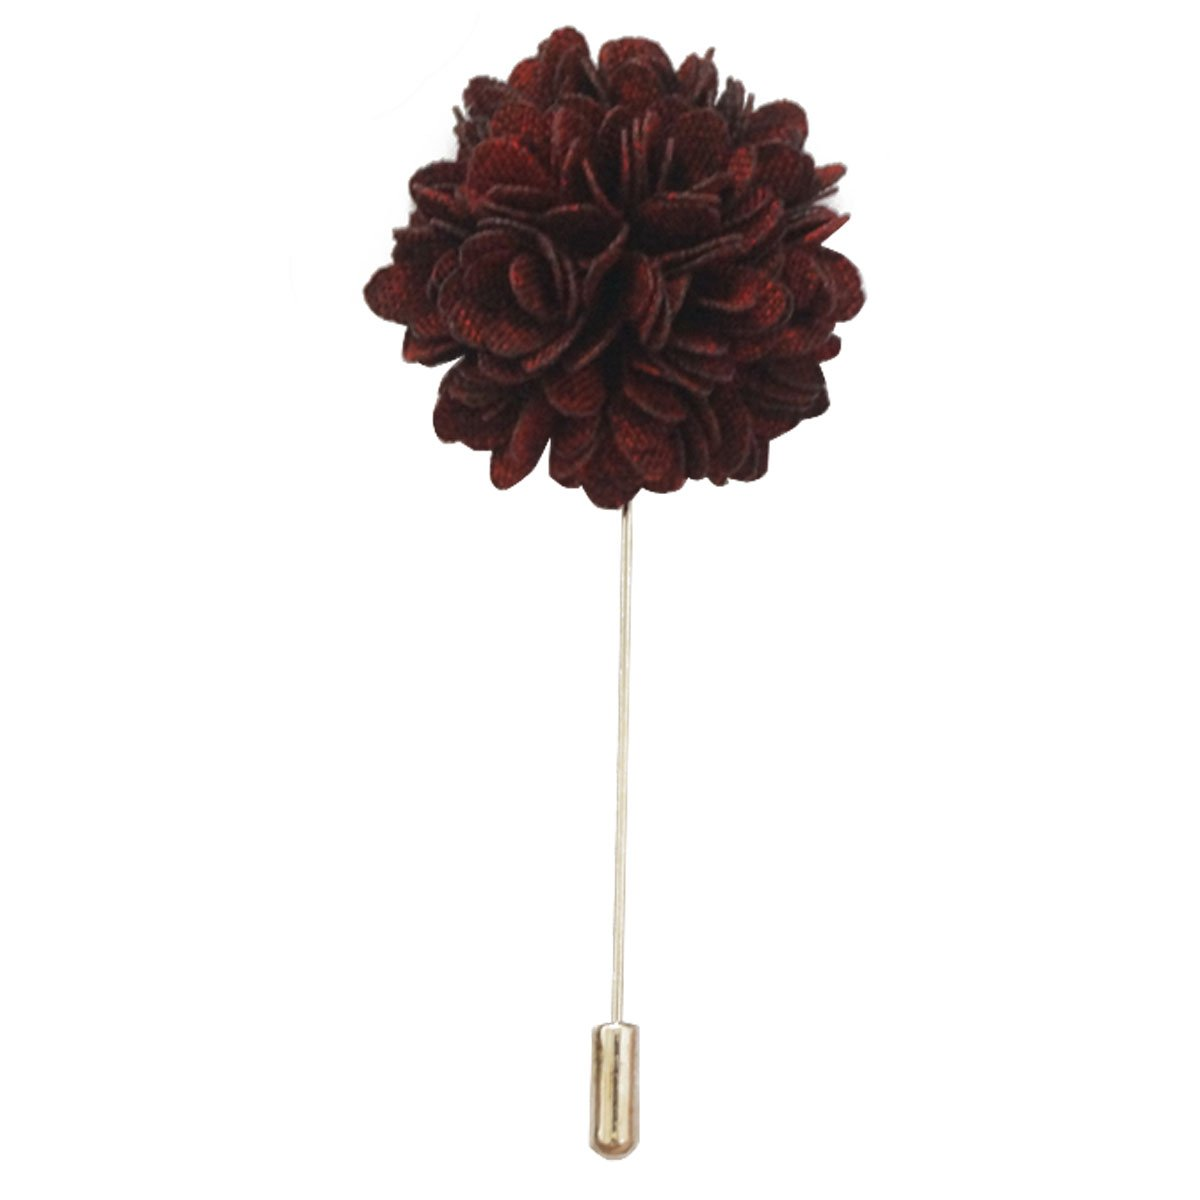 Sunny Home Lapel Flower Handmade Tuxedo Corsage Boutonniere Pin for Suit (Sky Blue)